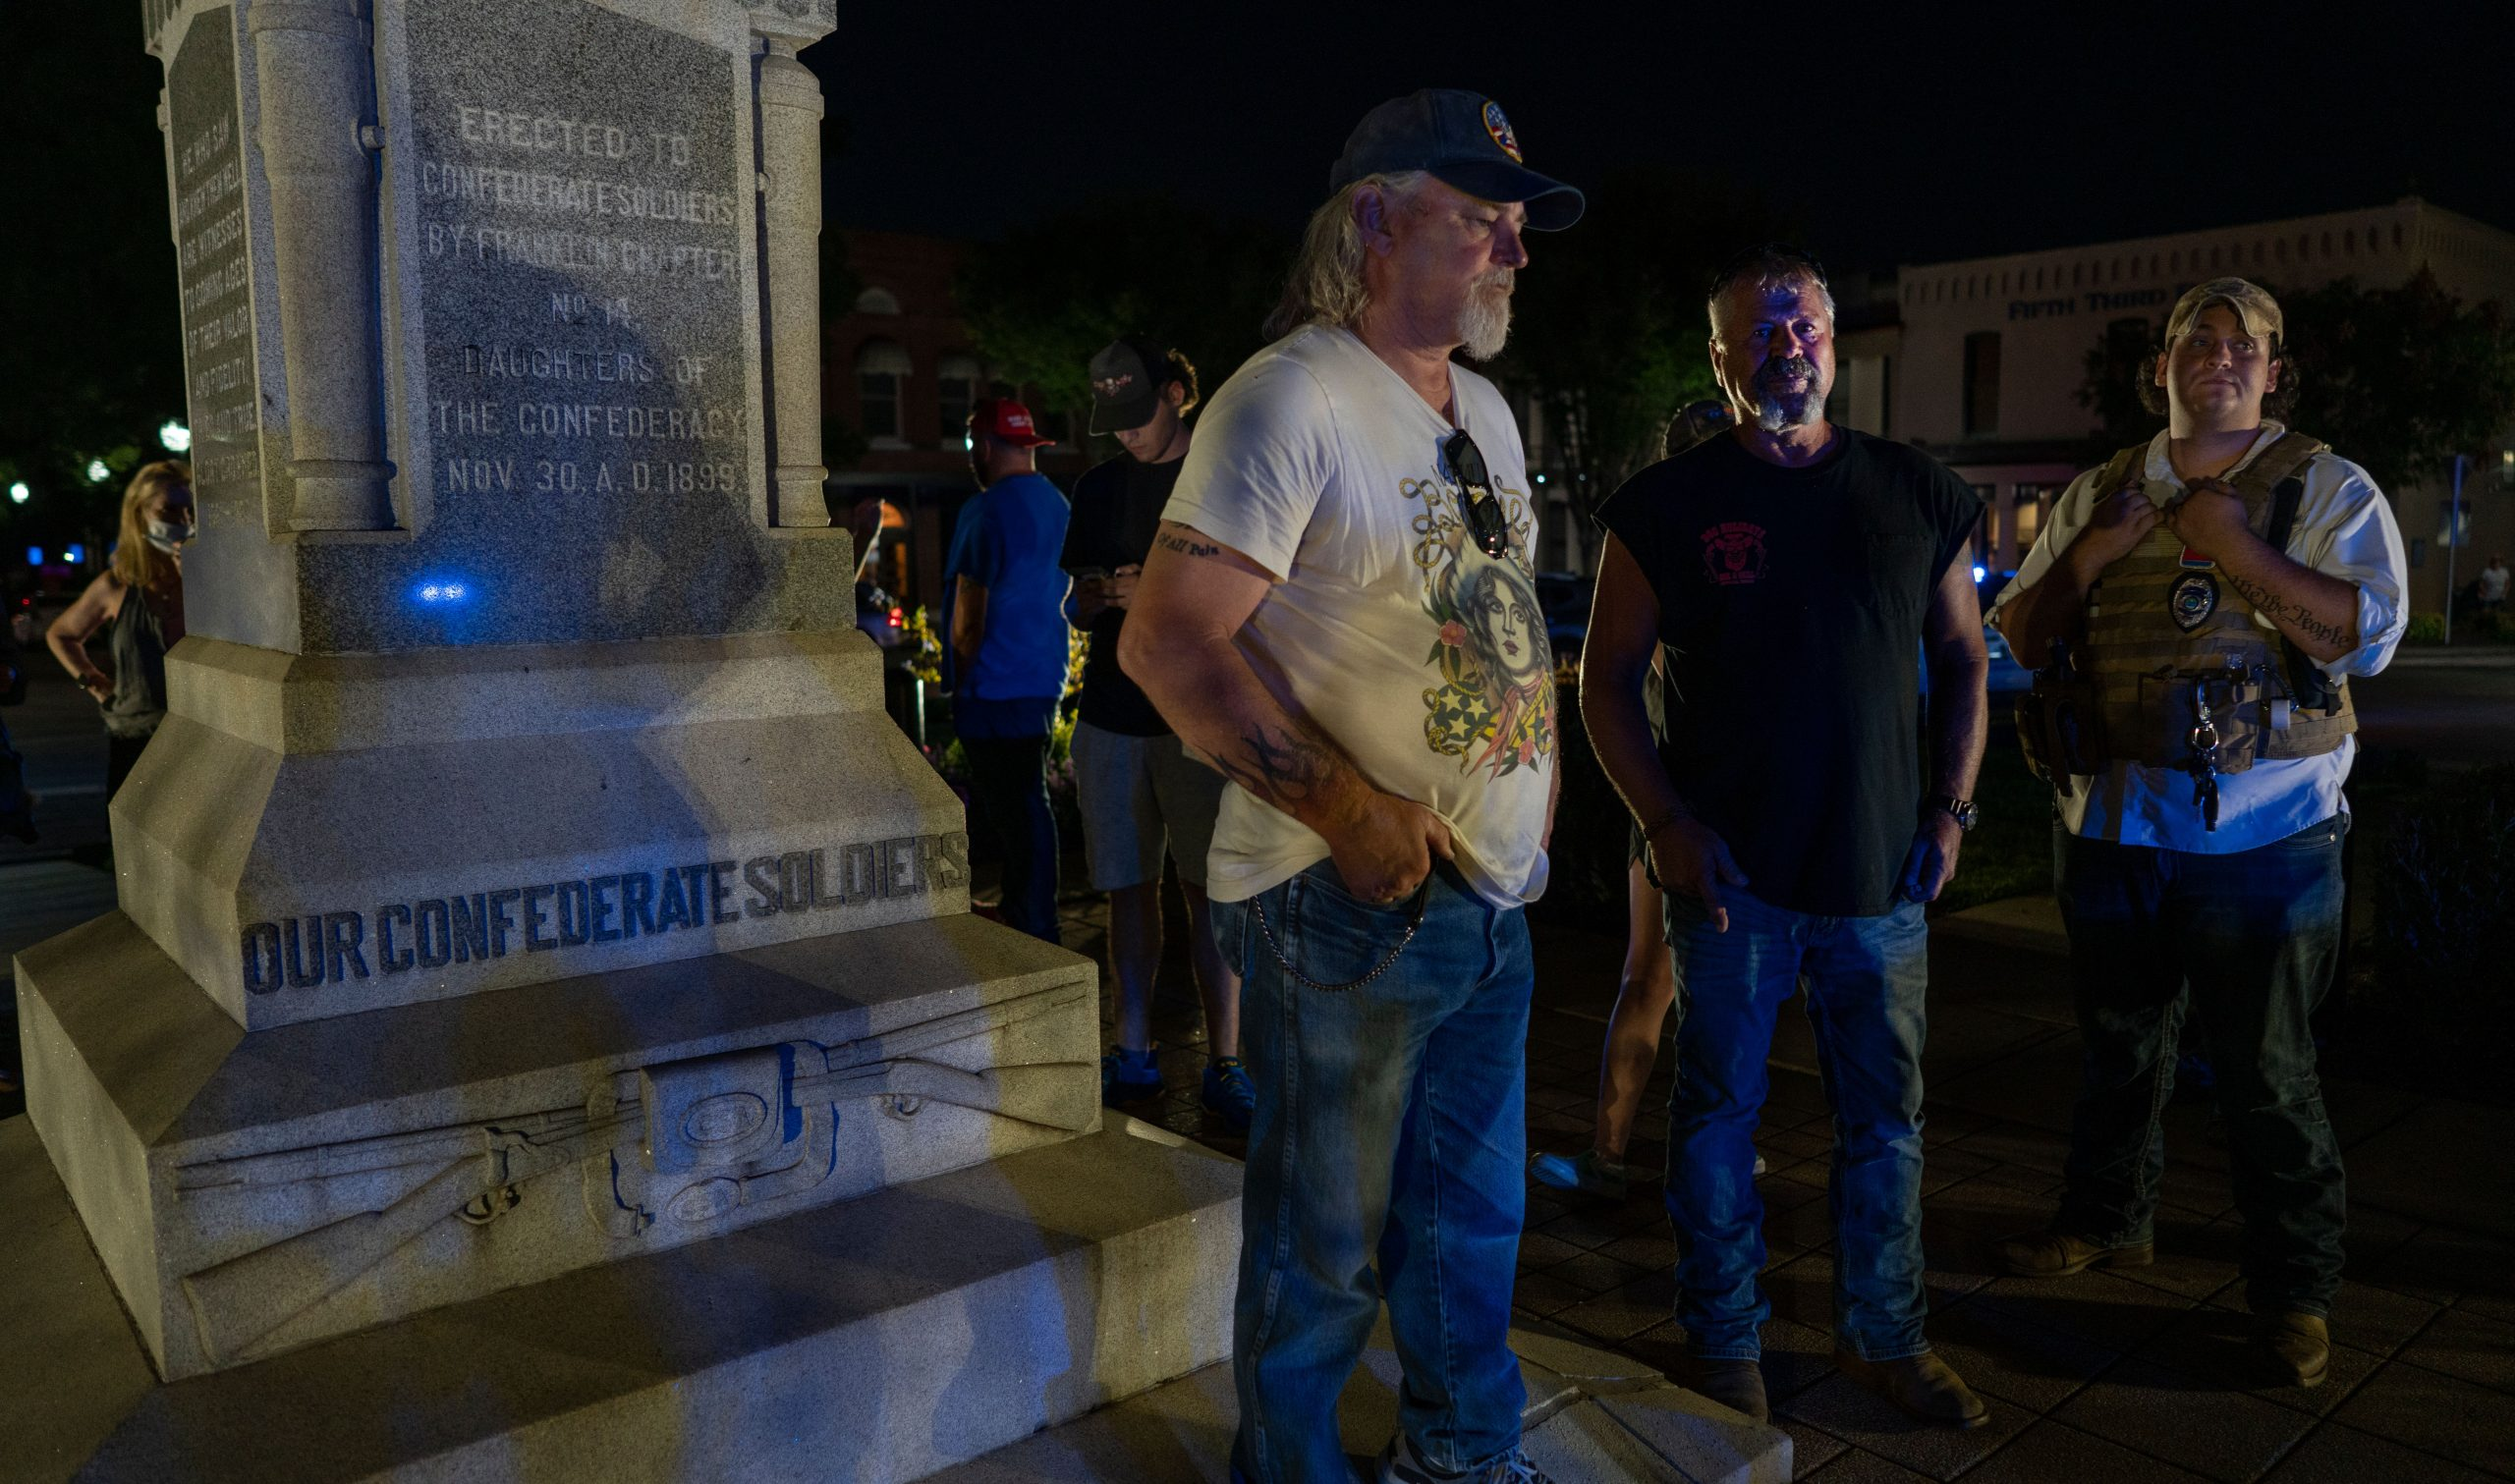 A counter protester stands beside the Confederate statue. (Photo: John Partipilo)